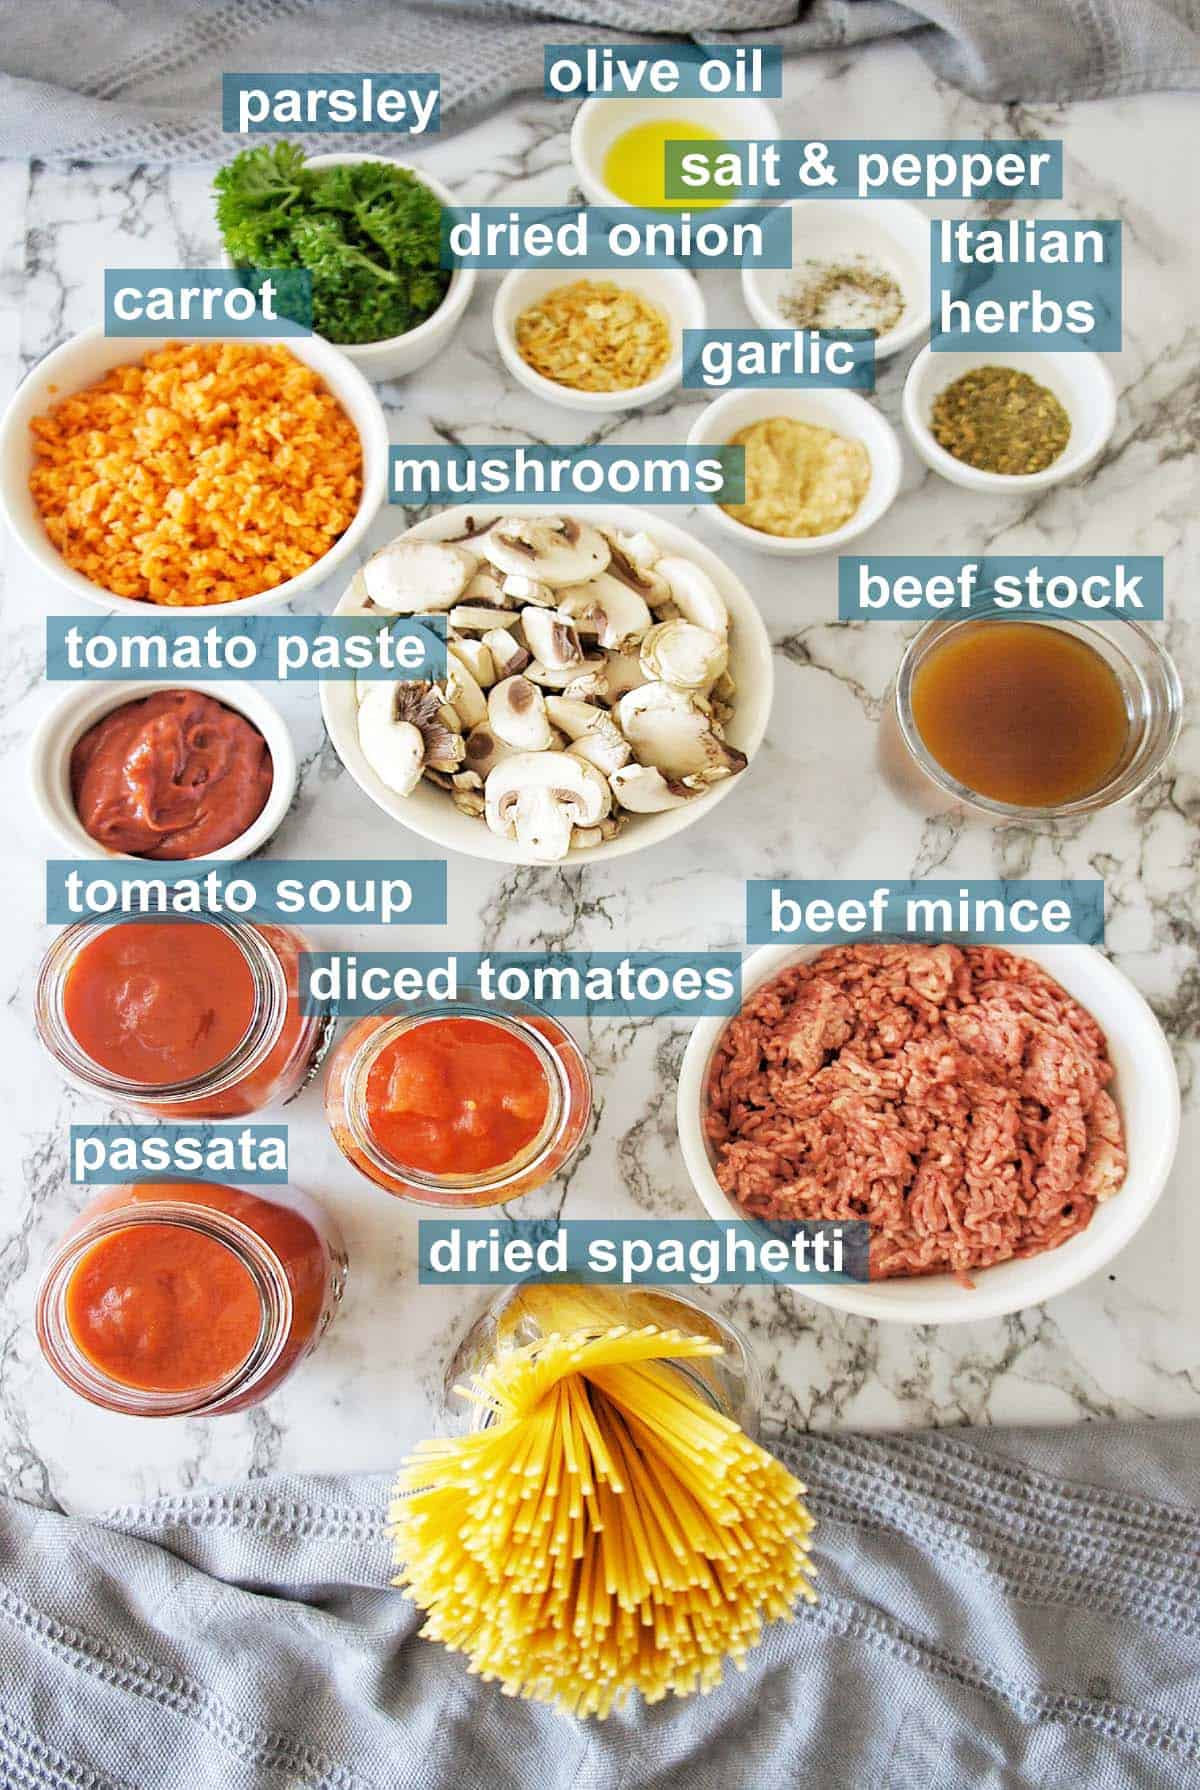 Ingredients for Spaghetti Bolognese on marble background with text overlay